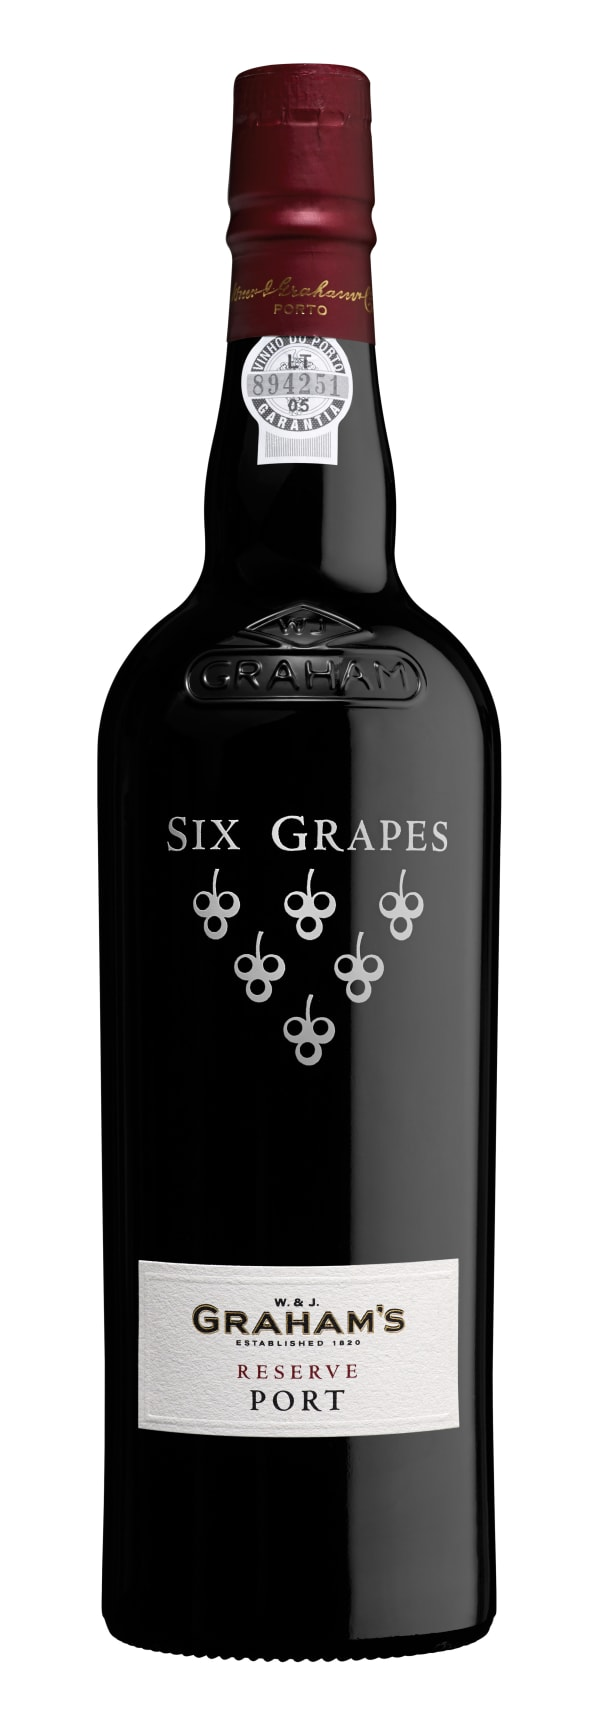 Graham's Six Grapes Port